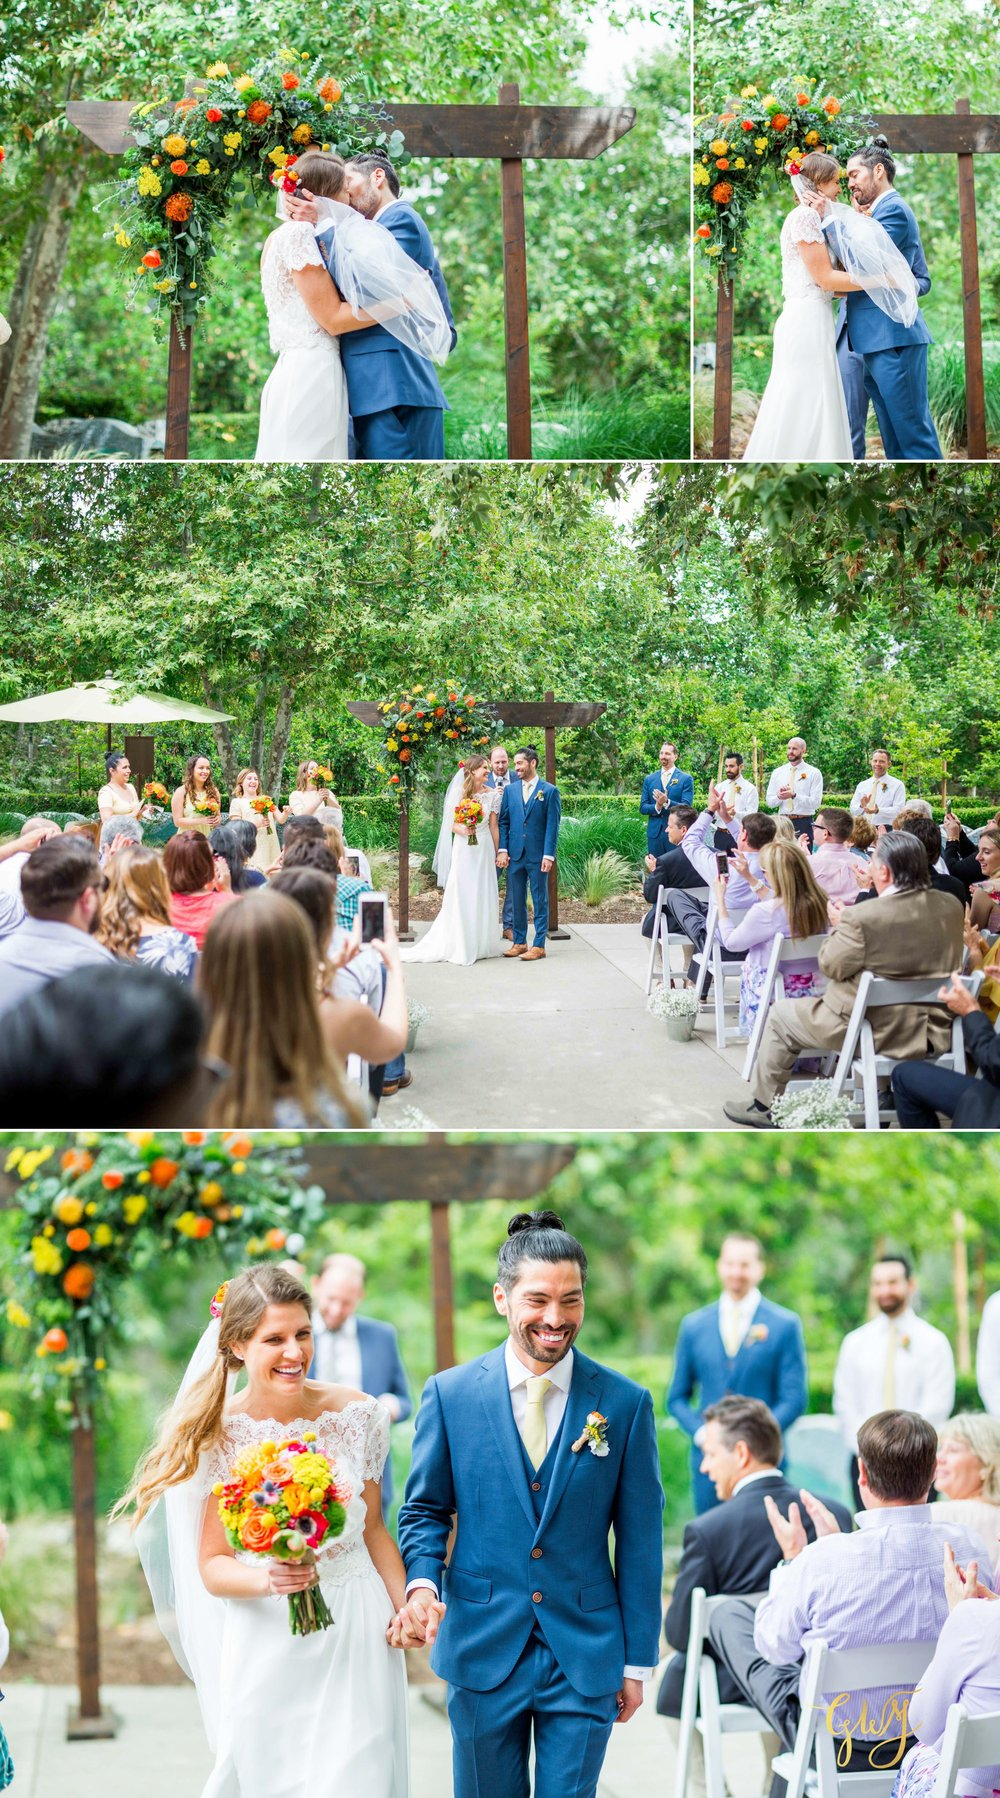 Jose + Sarah Norman P Murray Mission Viejo Summer Wedding by Glass Woods Media 29.jpg